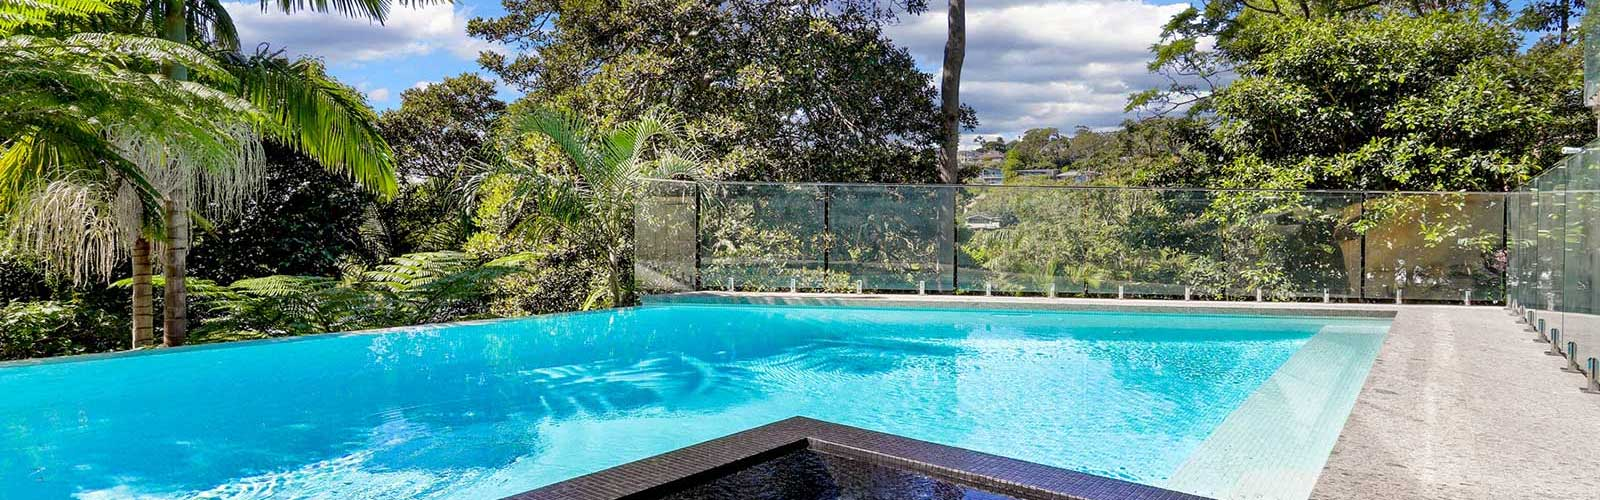 Pool Landscaping: Small and Mighty